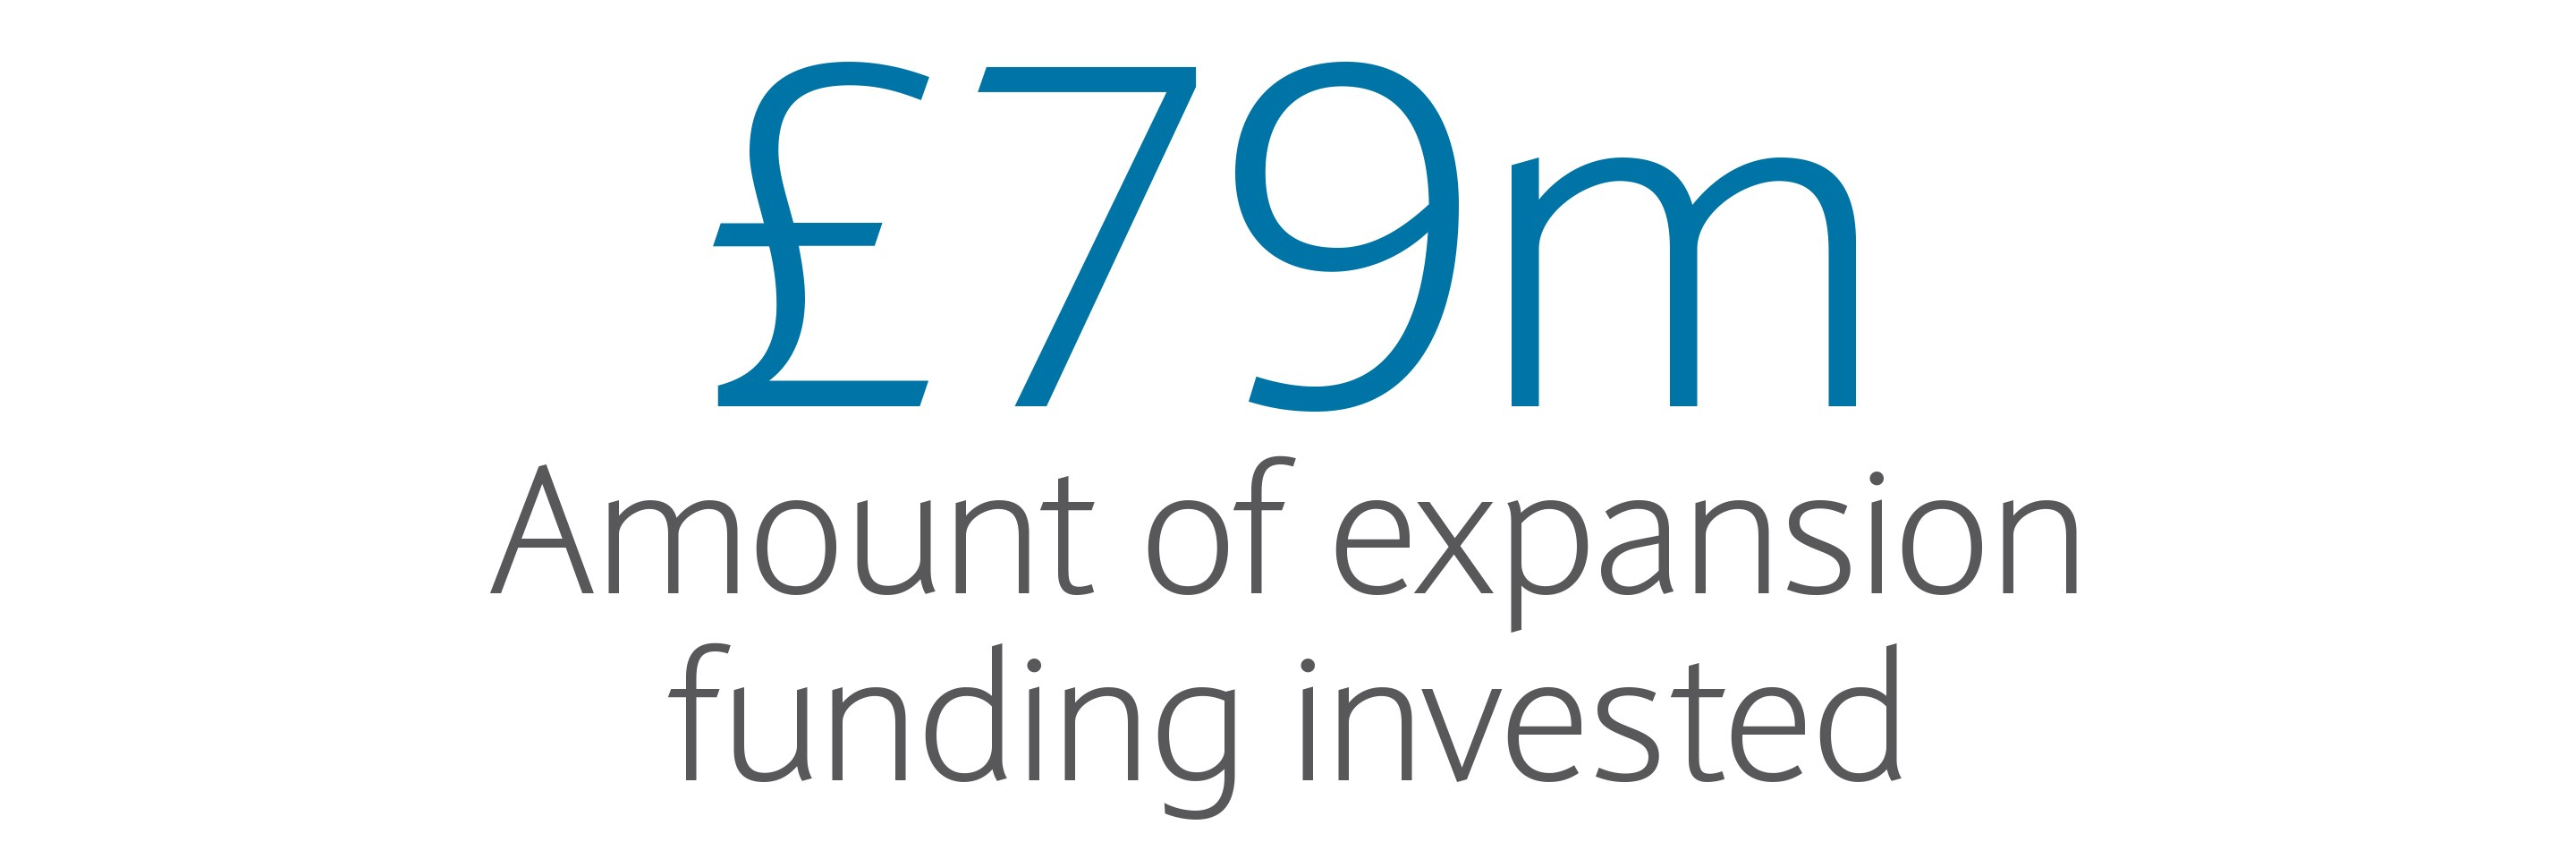 £79m: Amount of expansion funding invested